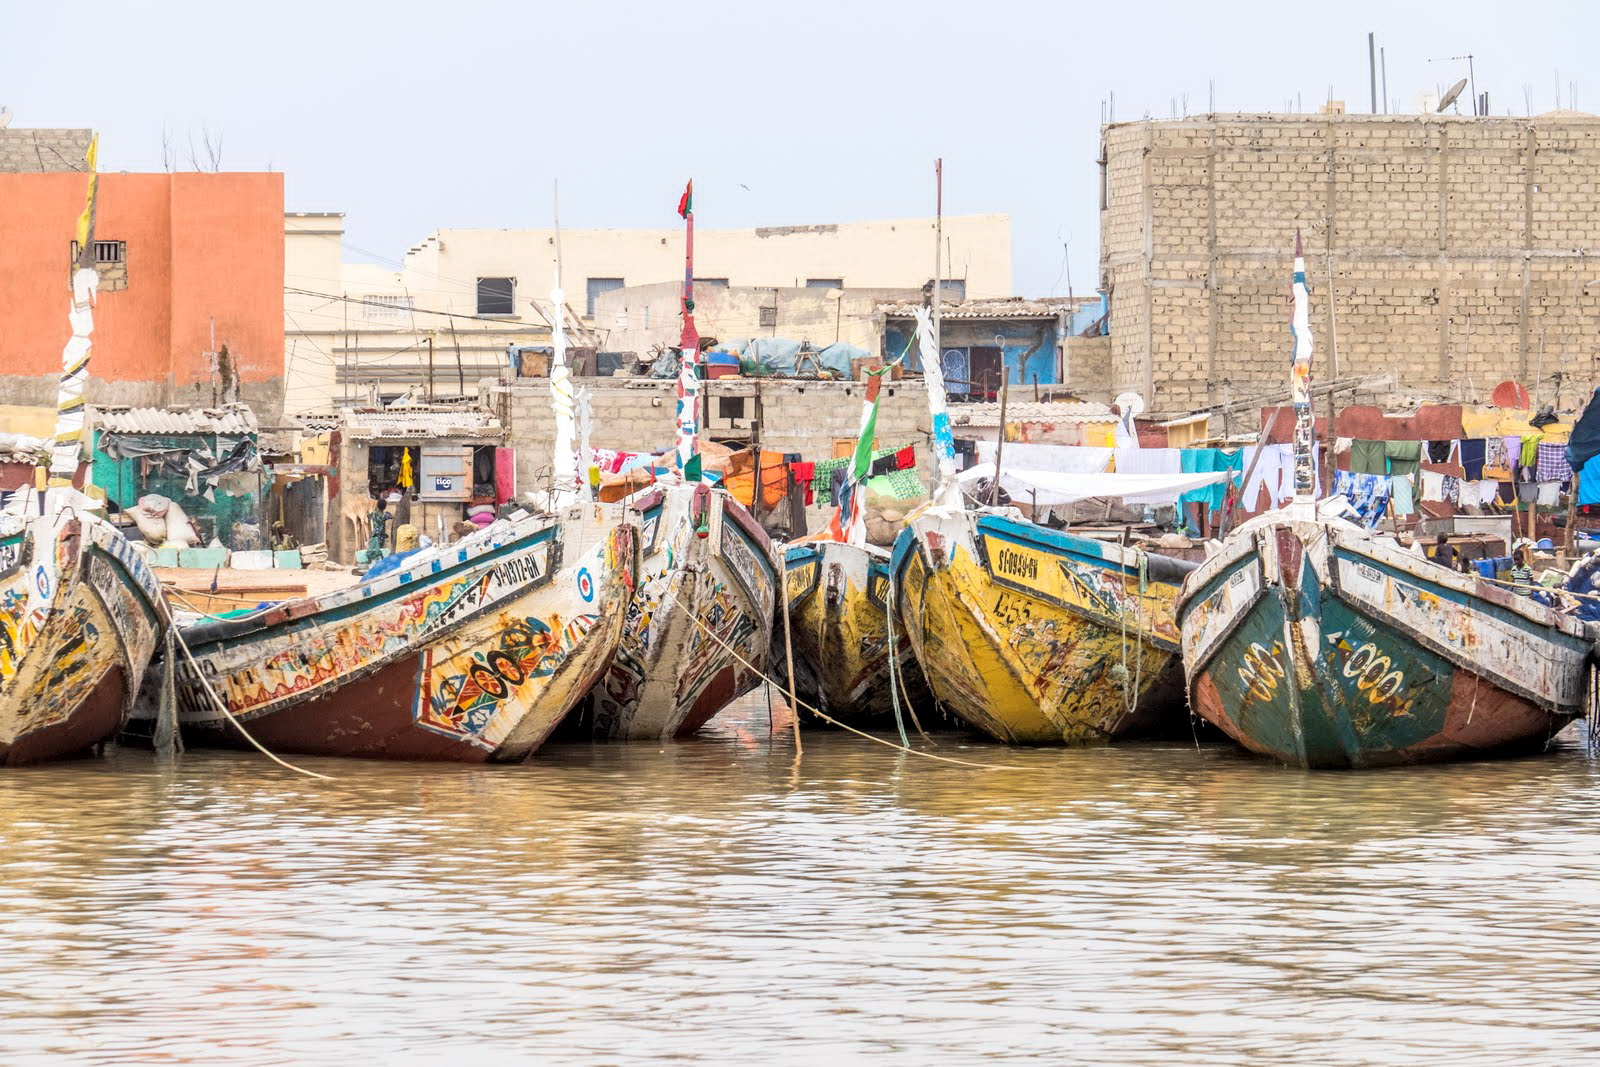 A group of colorful fishing boats in the harbor at St. Louis, Senegal. St. Louis is a major port for Senegal and a large portion of the people earn their living from the sea. Much of the fishing is done at night and the boats return in the morning to sell their catch.